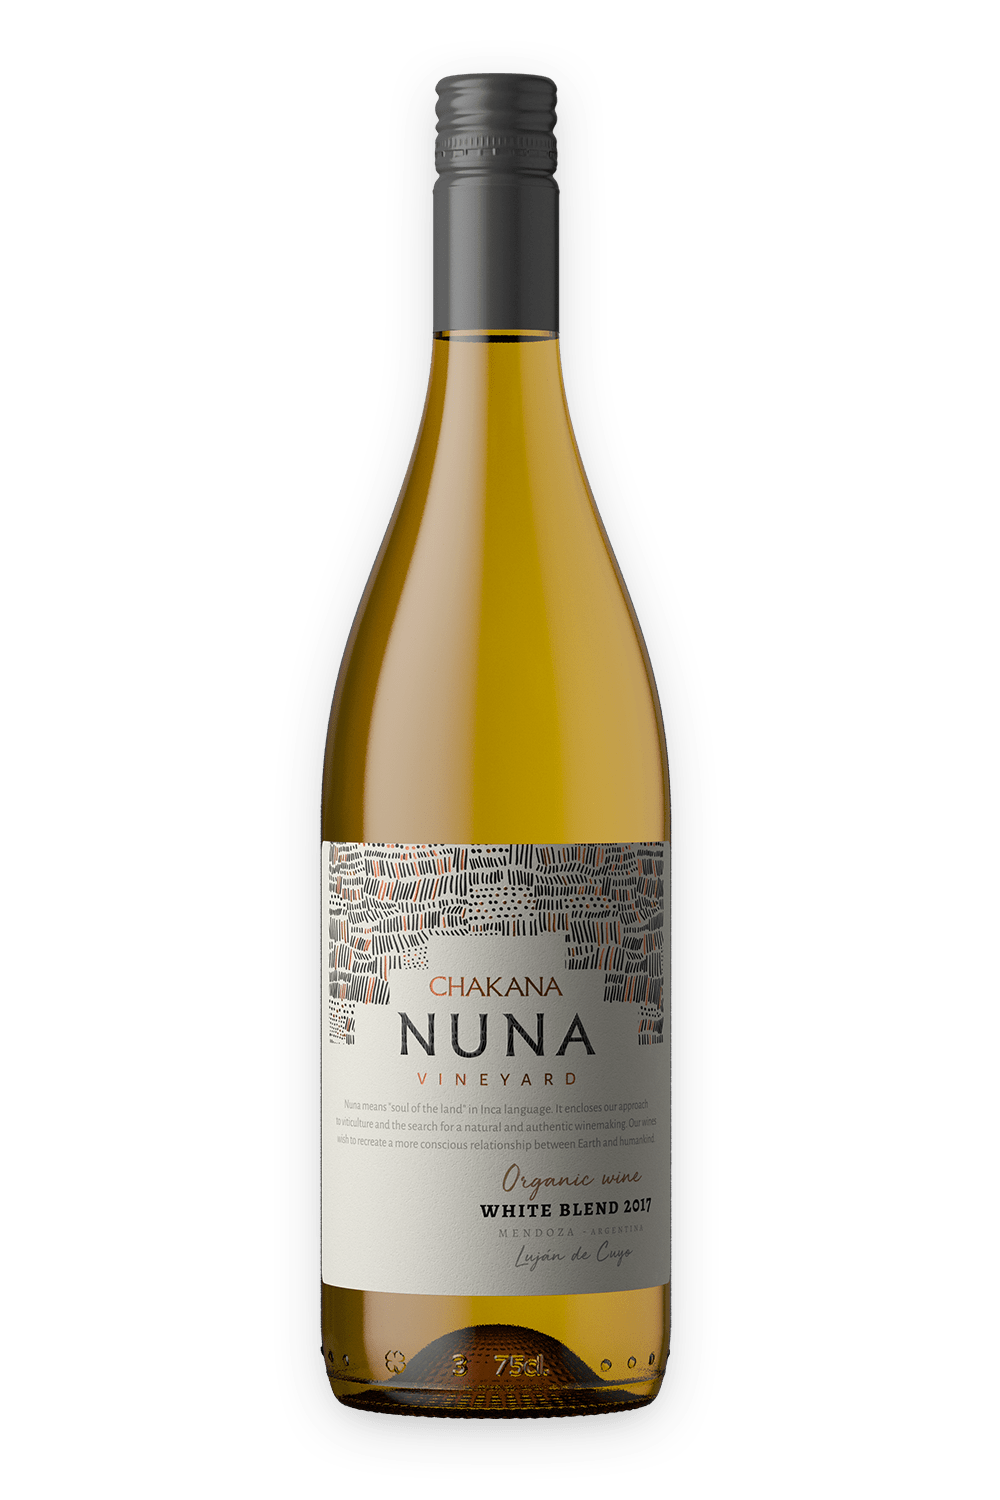 024721---Chakana-Nuna-Vineyard-White-Blend